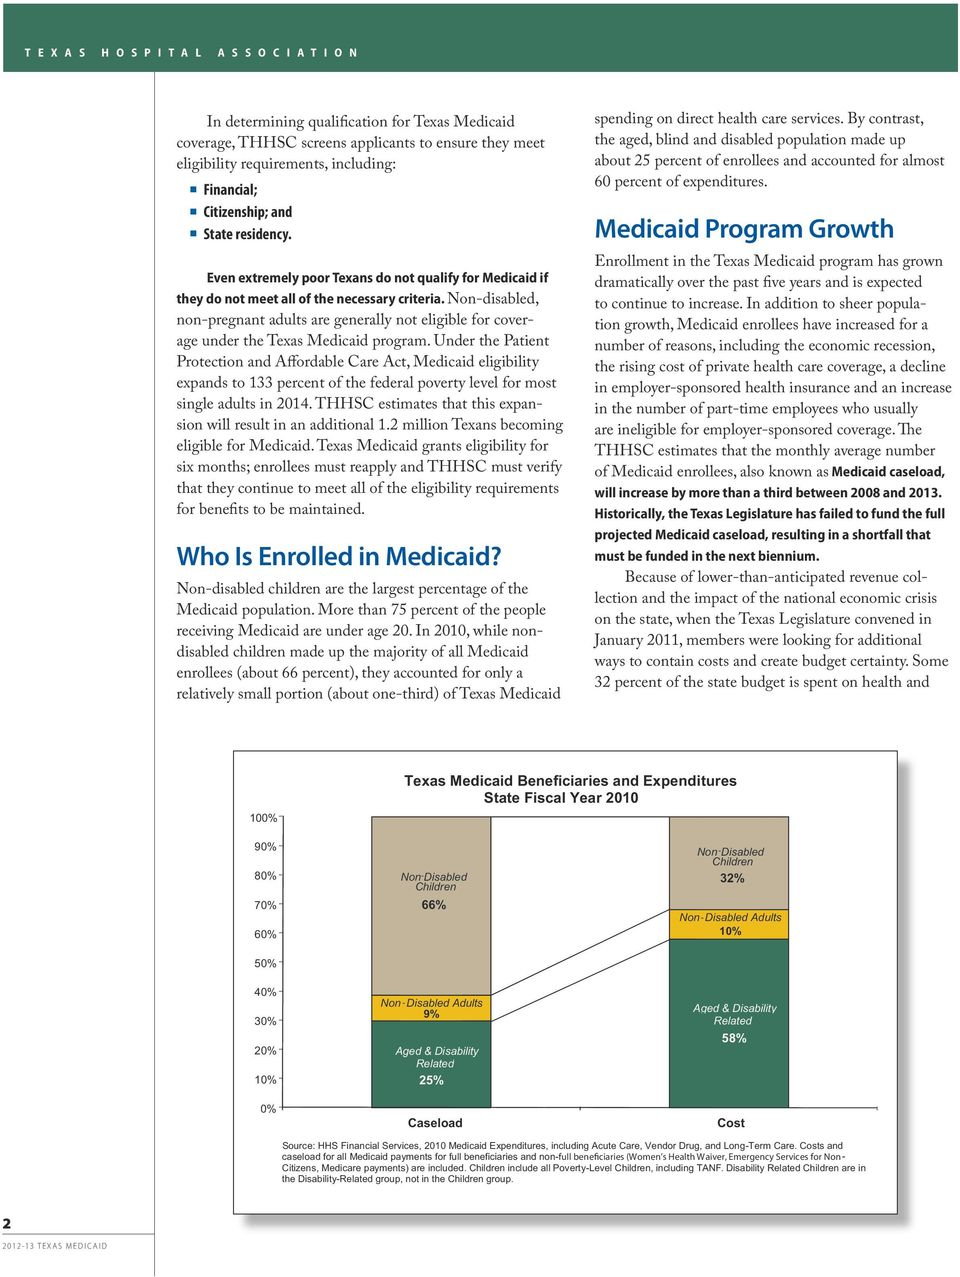 Non-disabled, non-pregnant adults are generally not eligible for coverage under the Texas Medicaid program.